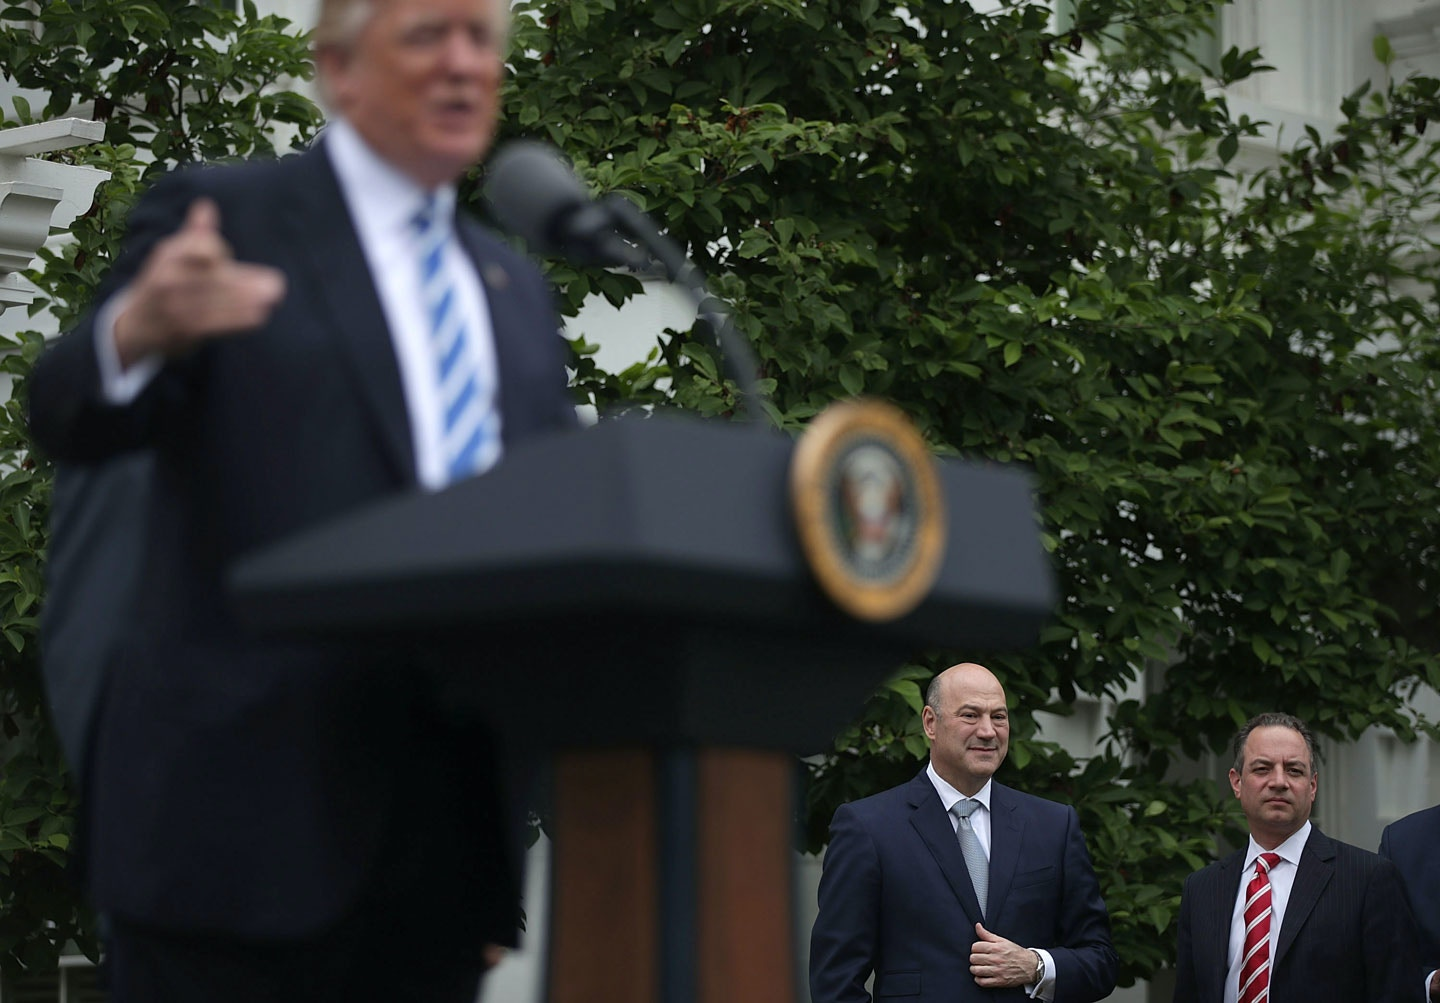 WASHINGTON, DC - MAY 01:  (AFP-OUT) U.S. President Donald Trump speaks to community bankers as Director of the National Economic Council Gary Cohn (2nd R) and White House Chief of Staff Reince Priebus (R) listen druing an event at the Kennedy Garden of the White House May 1, 2017 in Washington, DC. President Trump dropped by and spoke at the event with the Independent Community Bankers Association.  (Photo by Alex Wong/Getty Images)